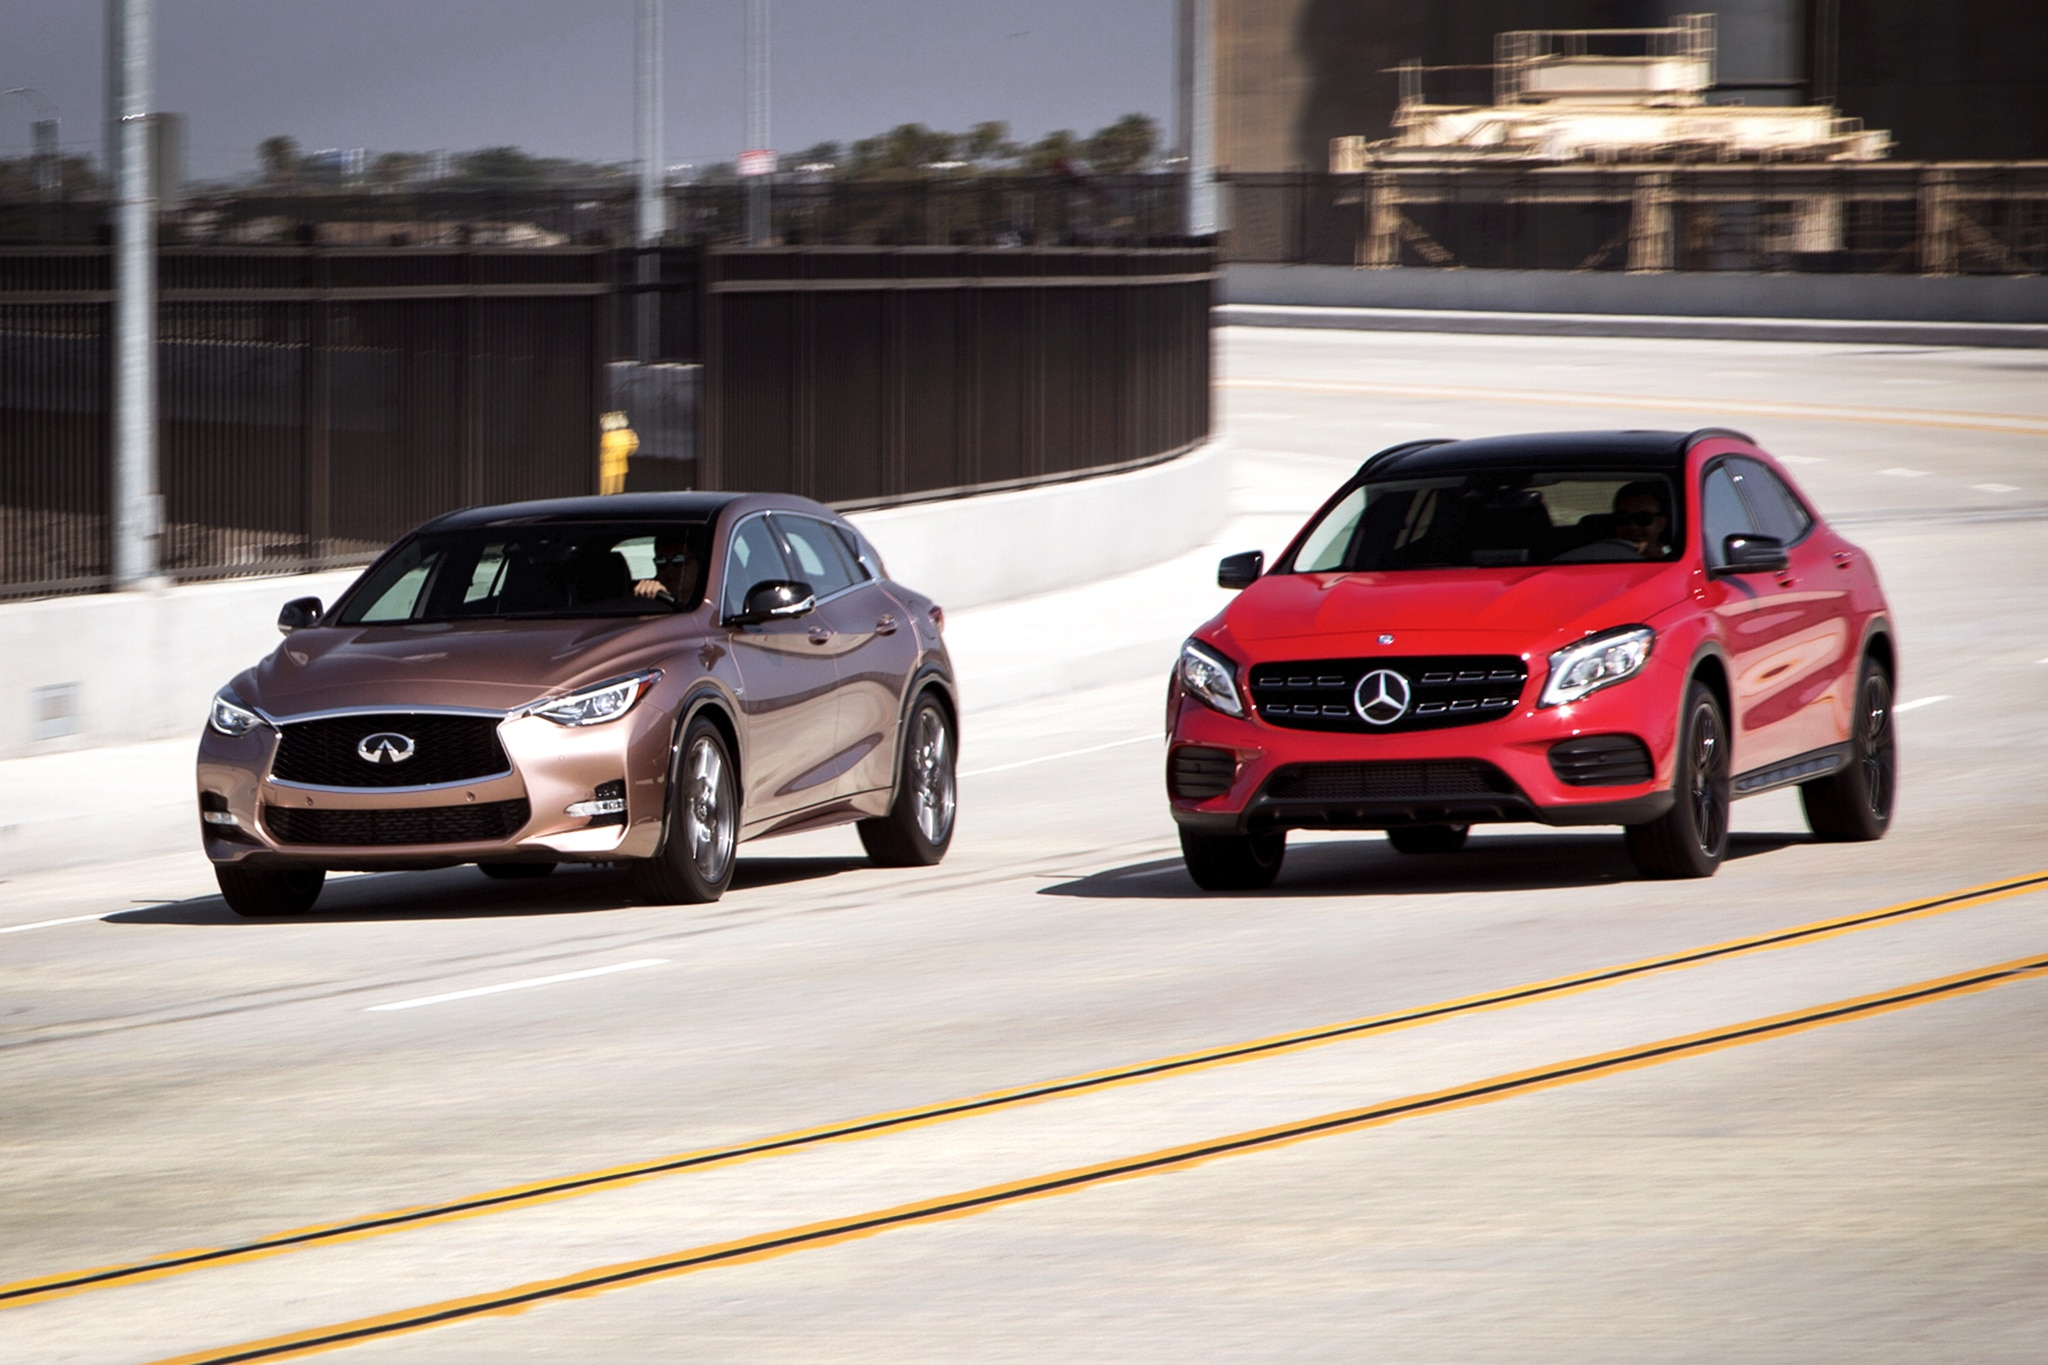 2017 Infiniti QX30 Sport Vs 2018 Mercedes Benz GLA250 4Matic 31